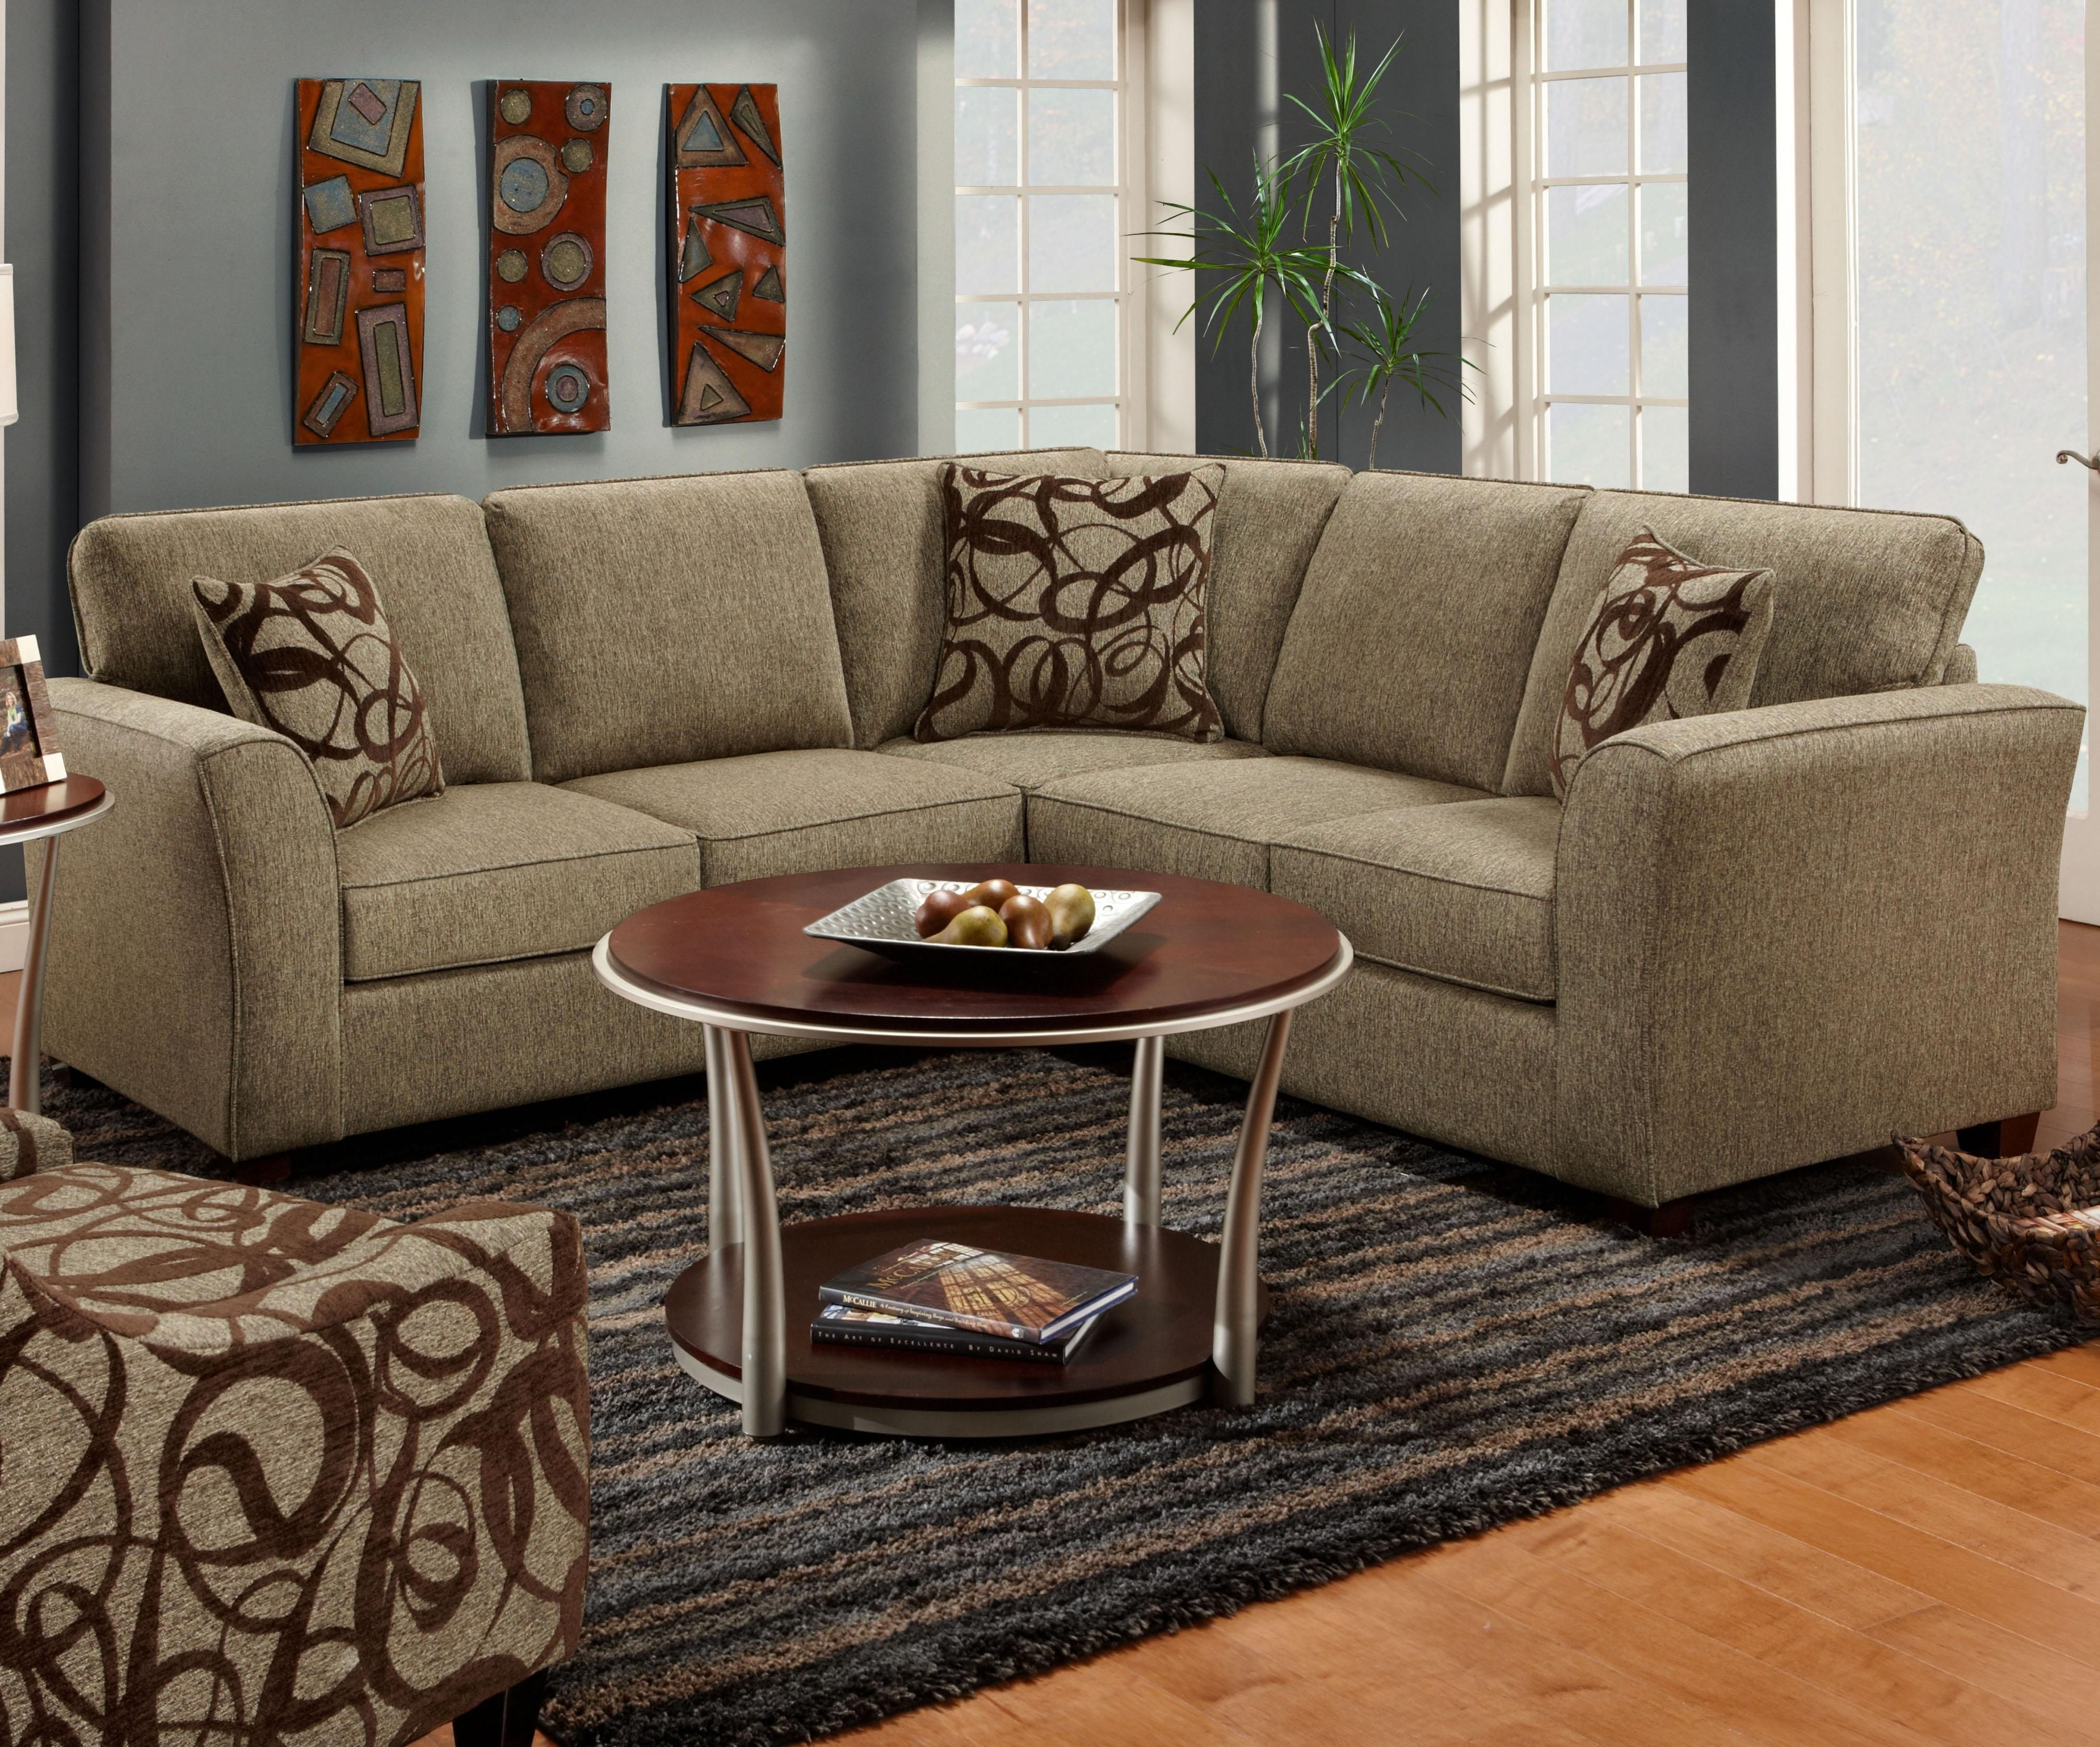 1295 1296 2 Piece Sectional Sofafusion Furniture | For The Home Within Jackson Ms Sectional Sofas (View 10 of 10)